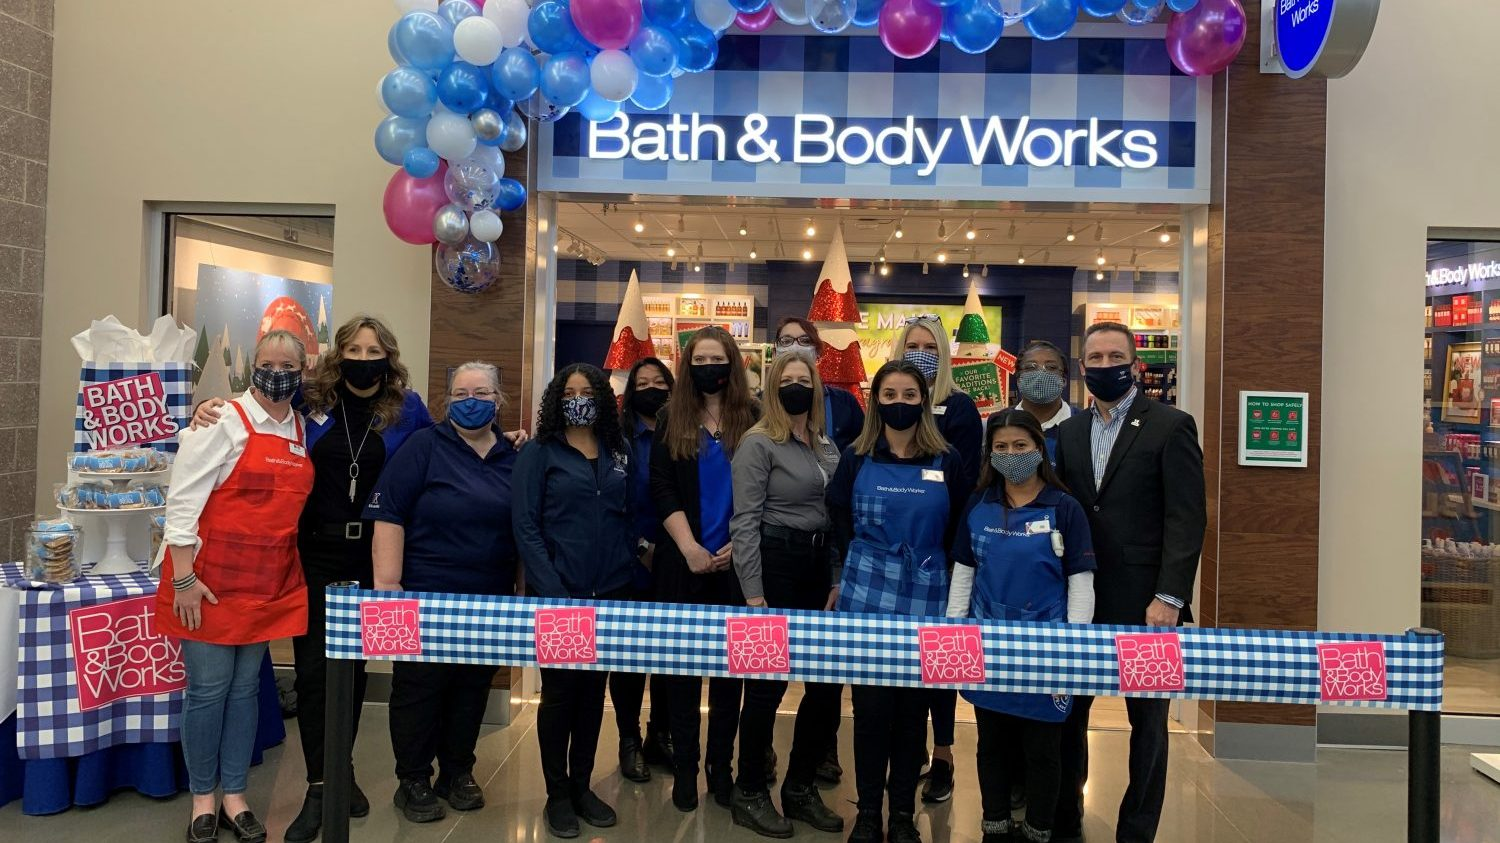 JBLM Bath and Body Works 1